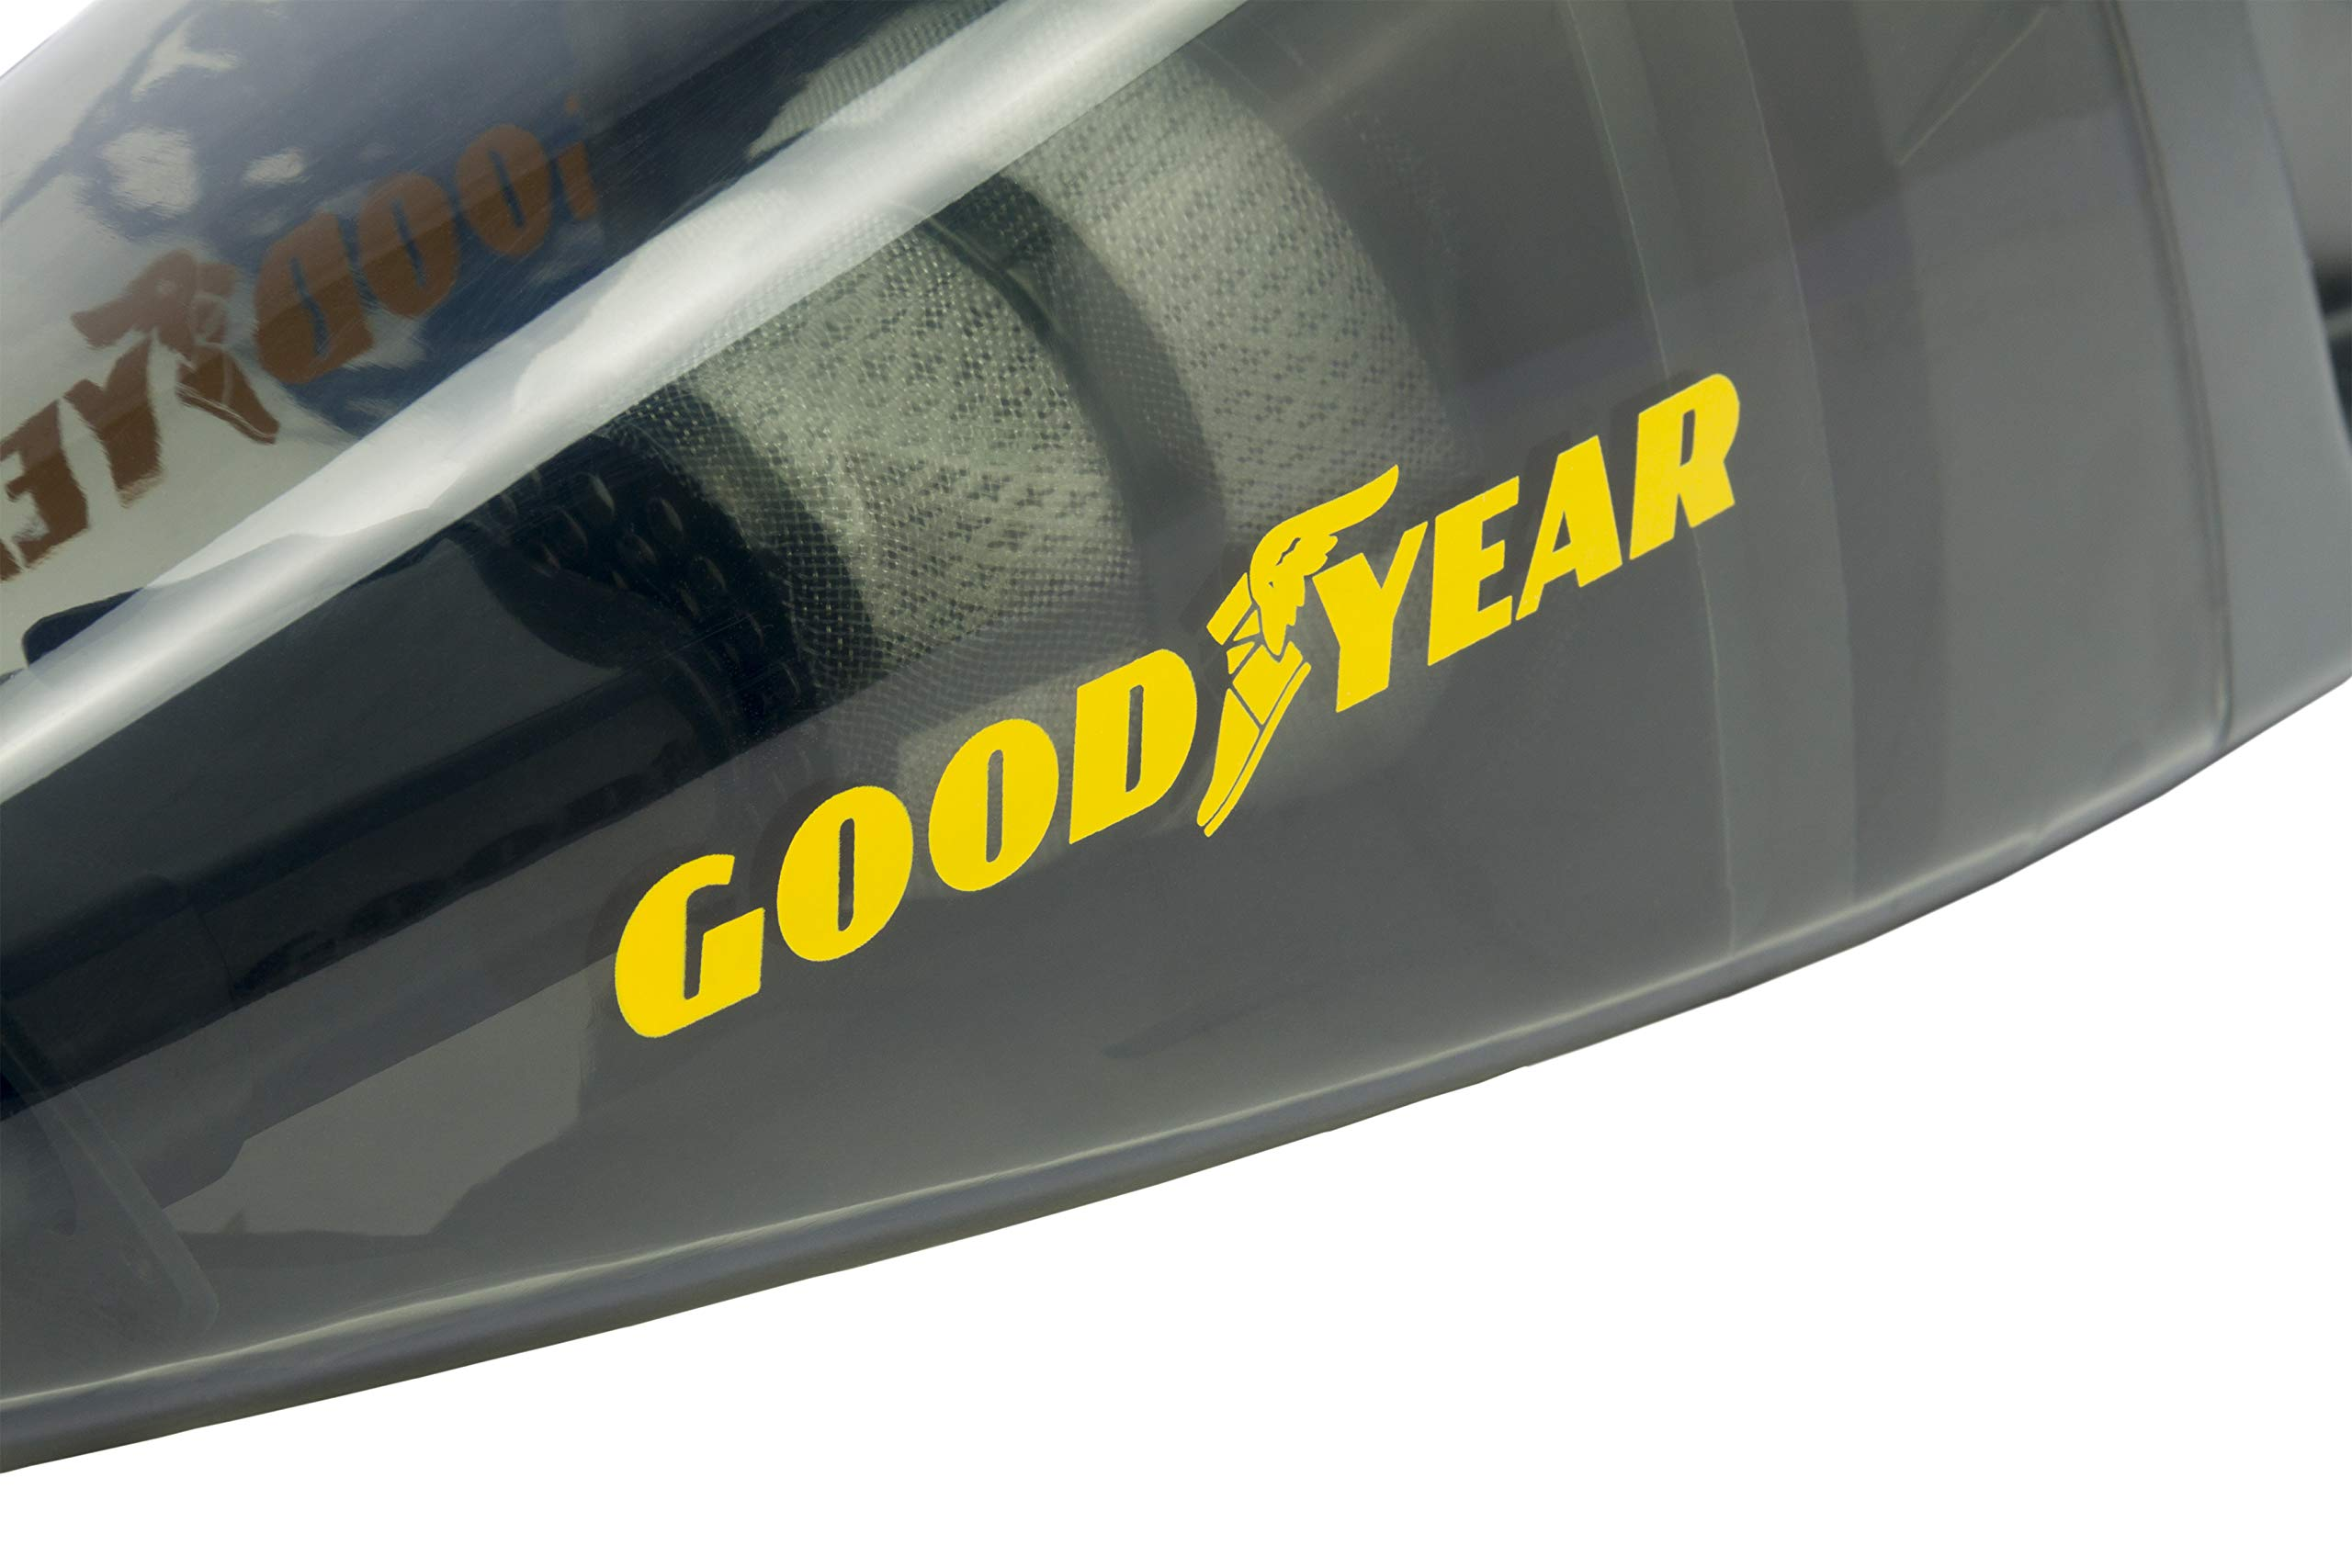 GOOD YEAR GOD2110 Aspirador para Coche 12V y Cable de 4